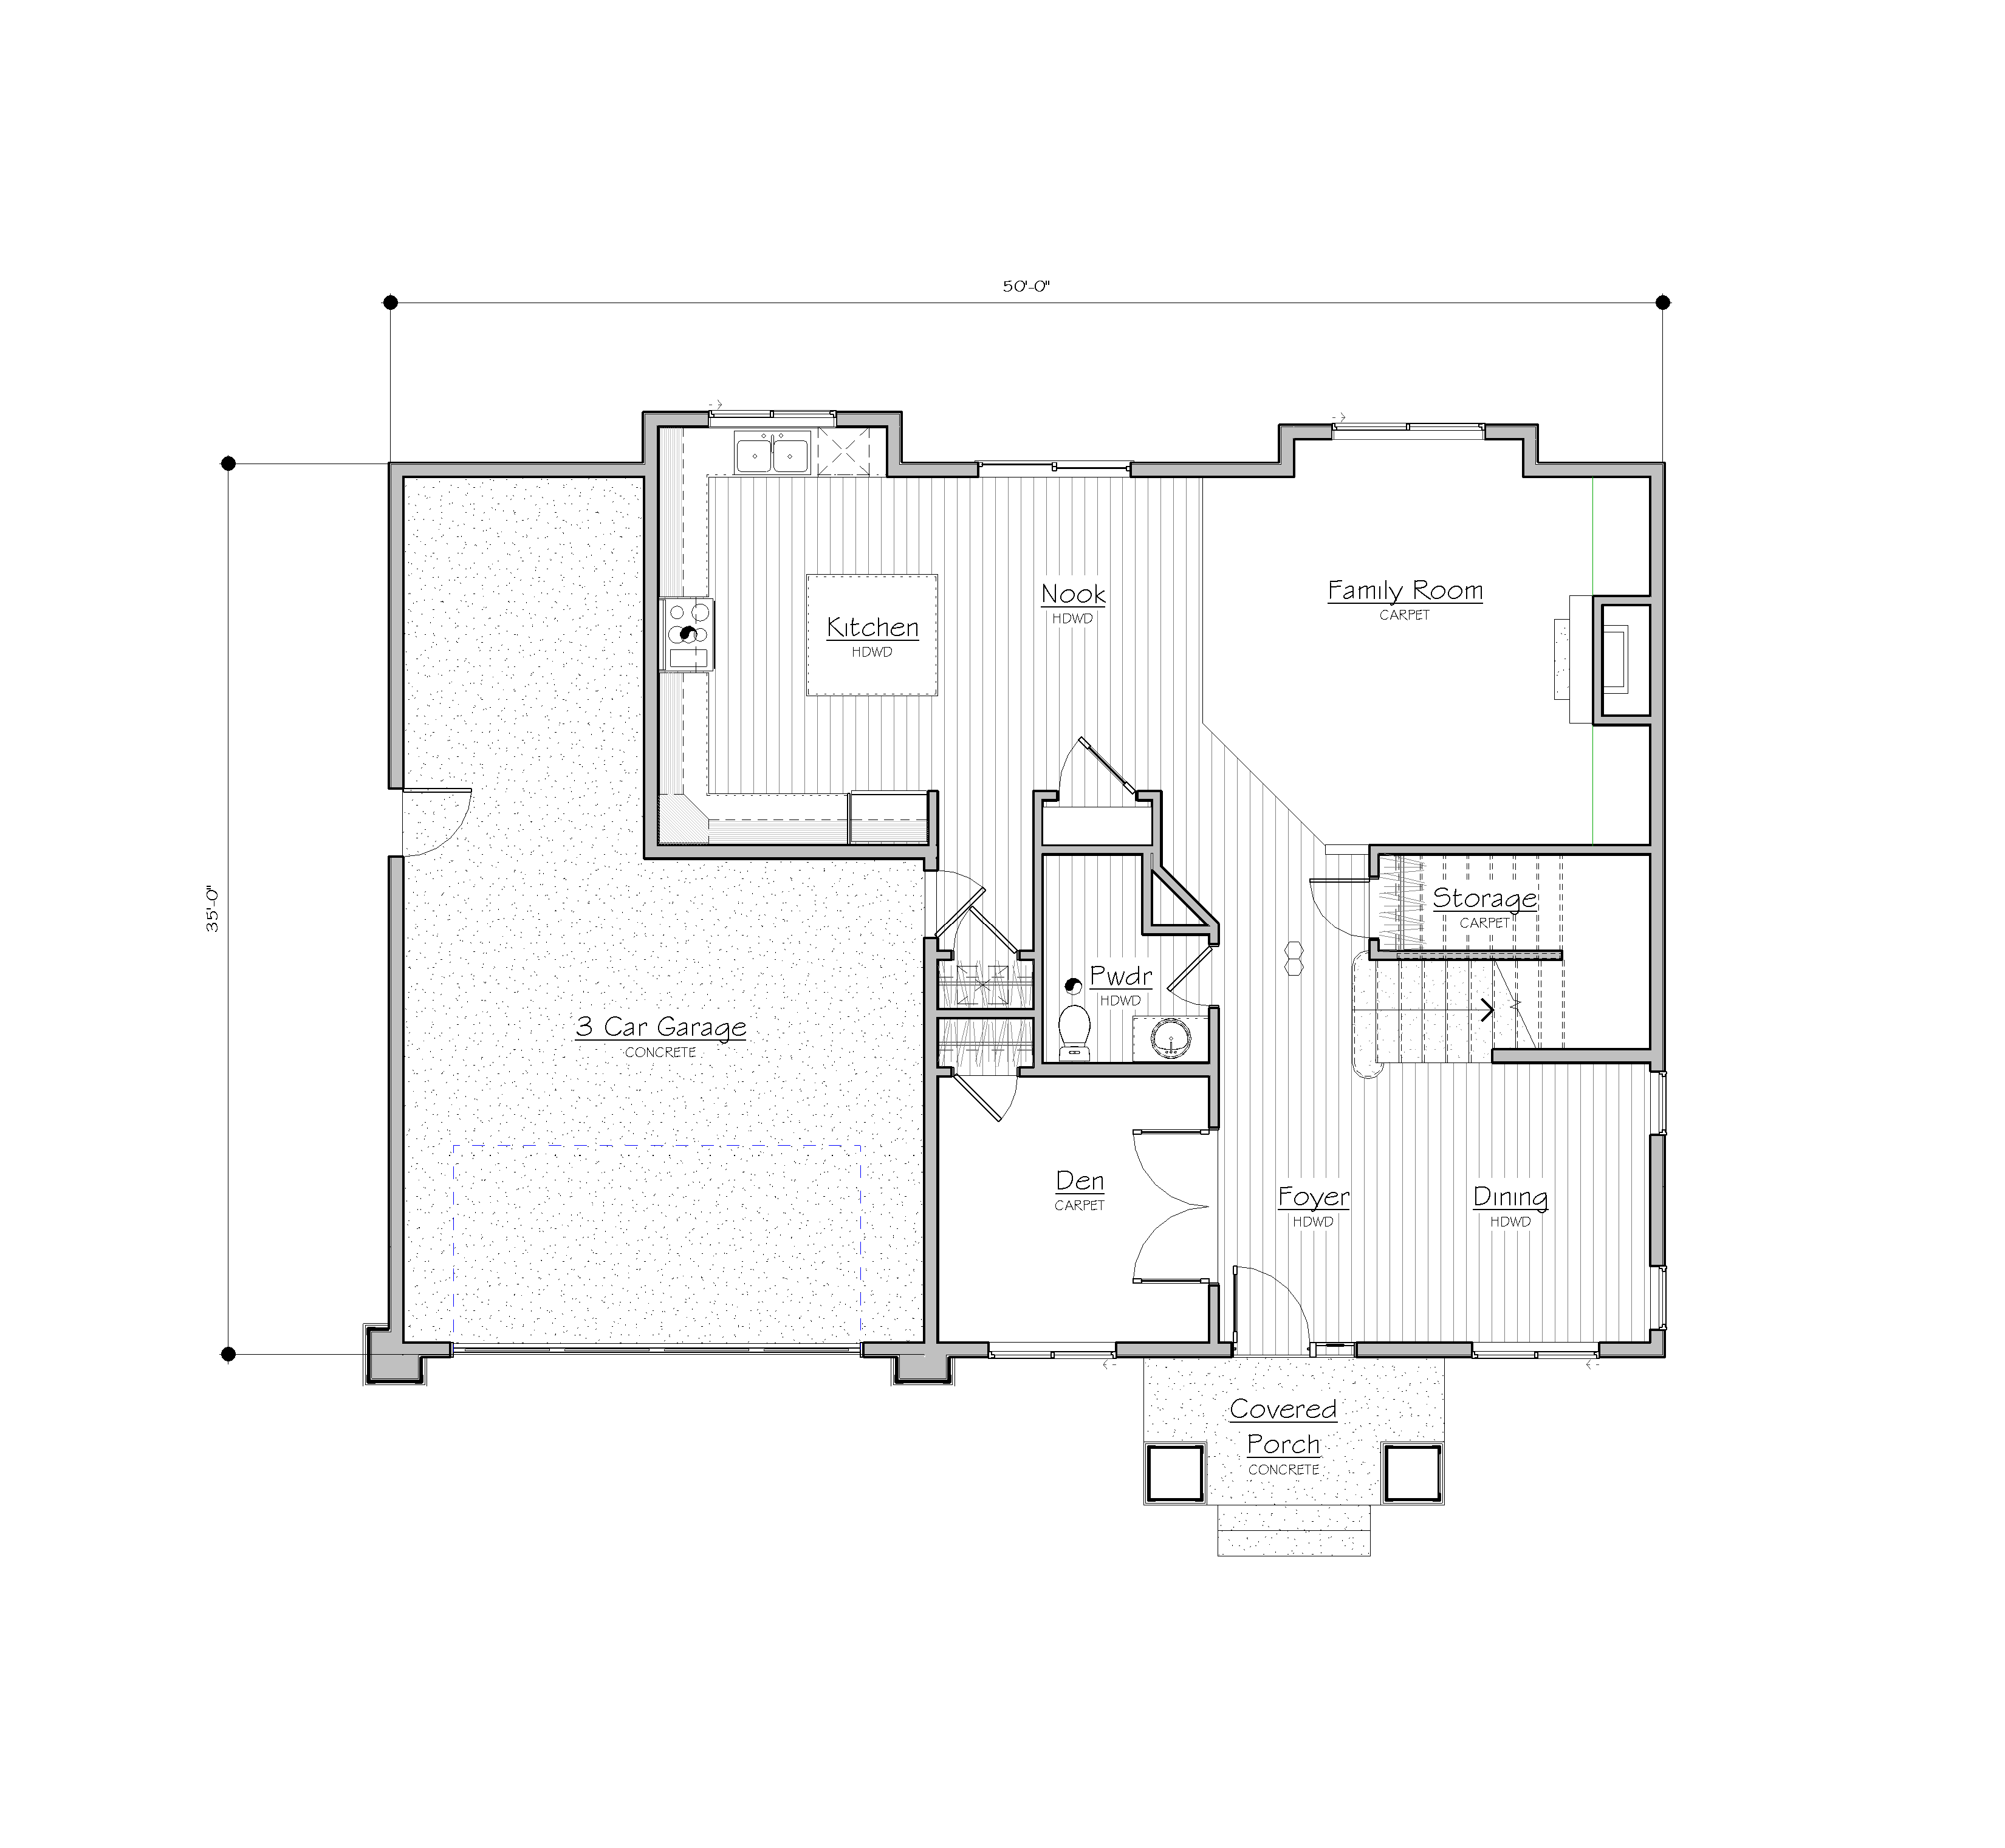 674 olympia ct ne lot 2 custom homes seattle bellevue for Copying house plans